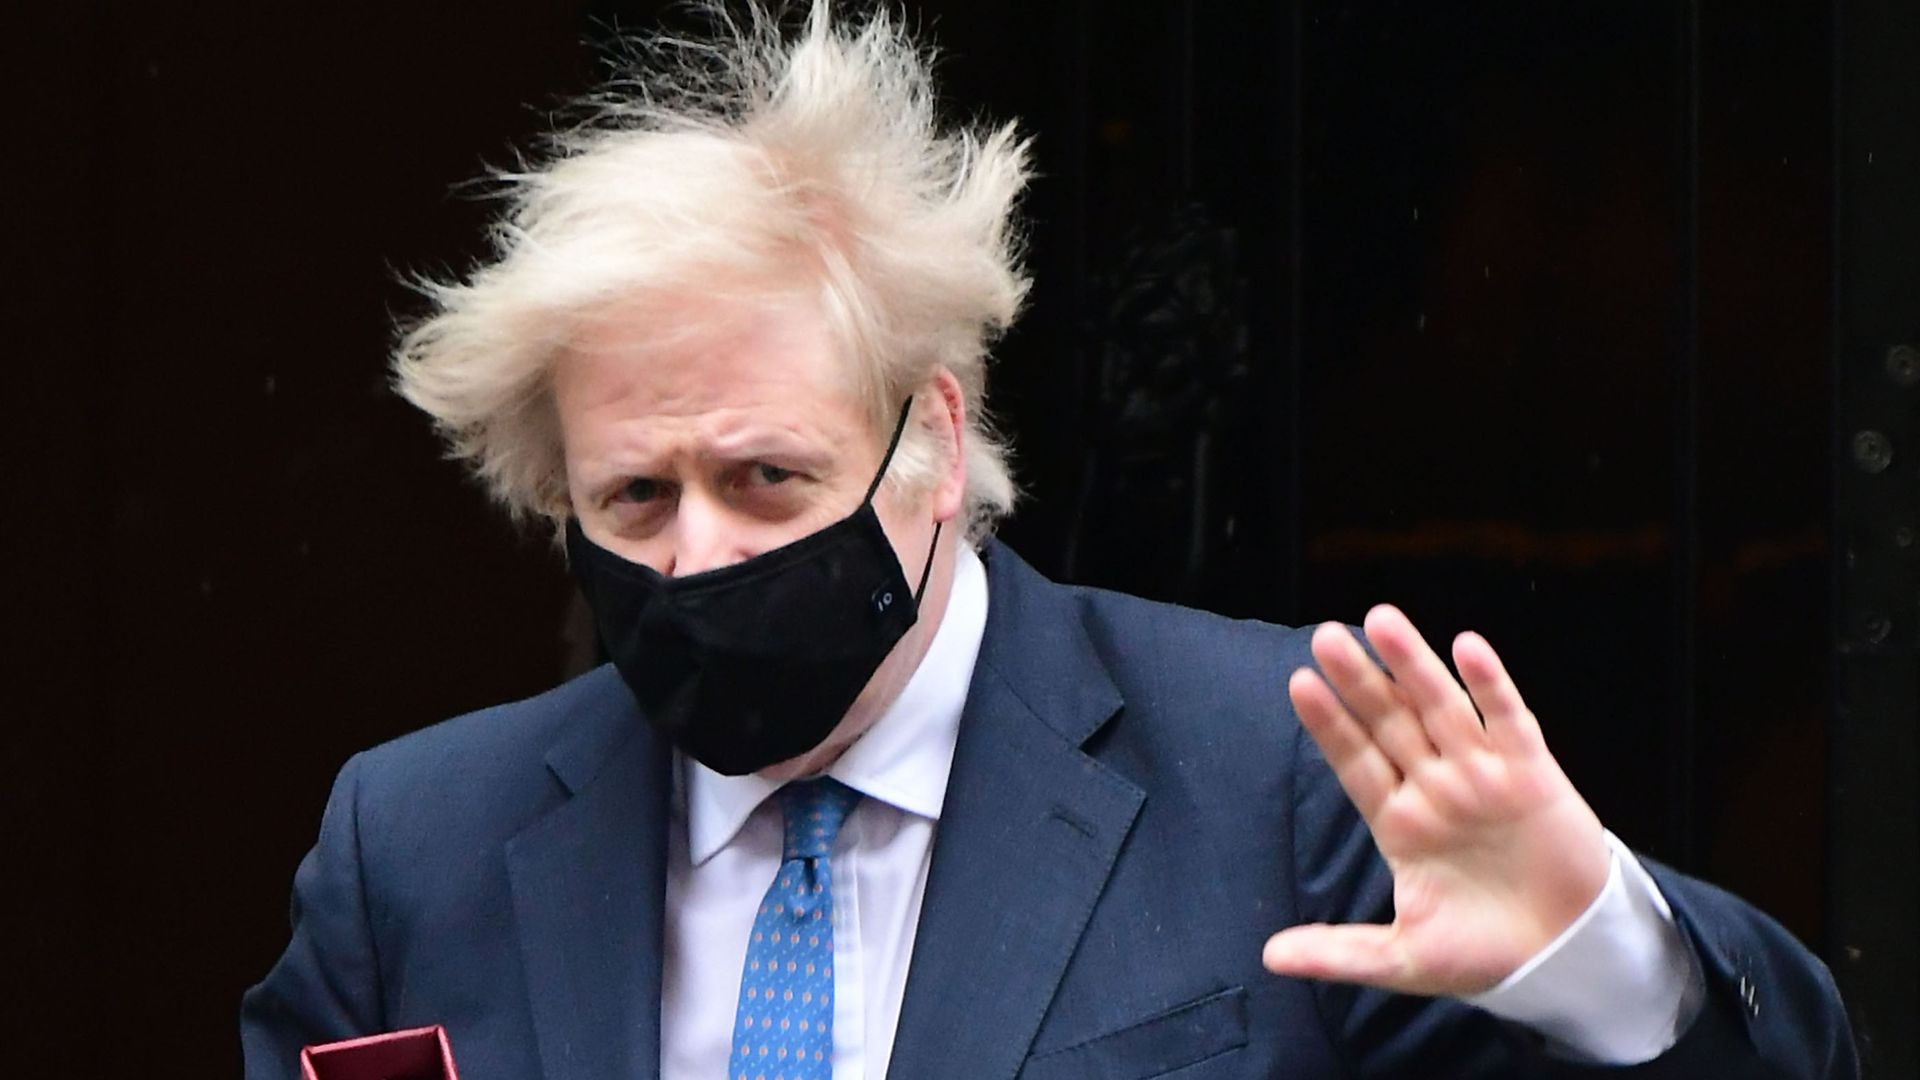 Prime minister Boris Johnson leaves 10 Downing Street to attend Prime Minister's Questions at the Houses of Parliament, London - Credit: PA